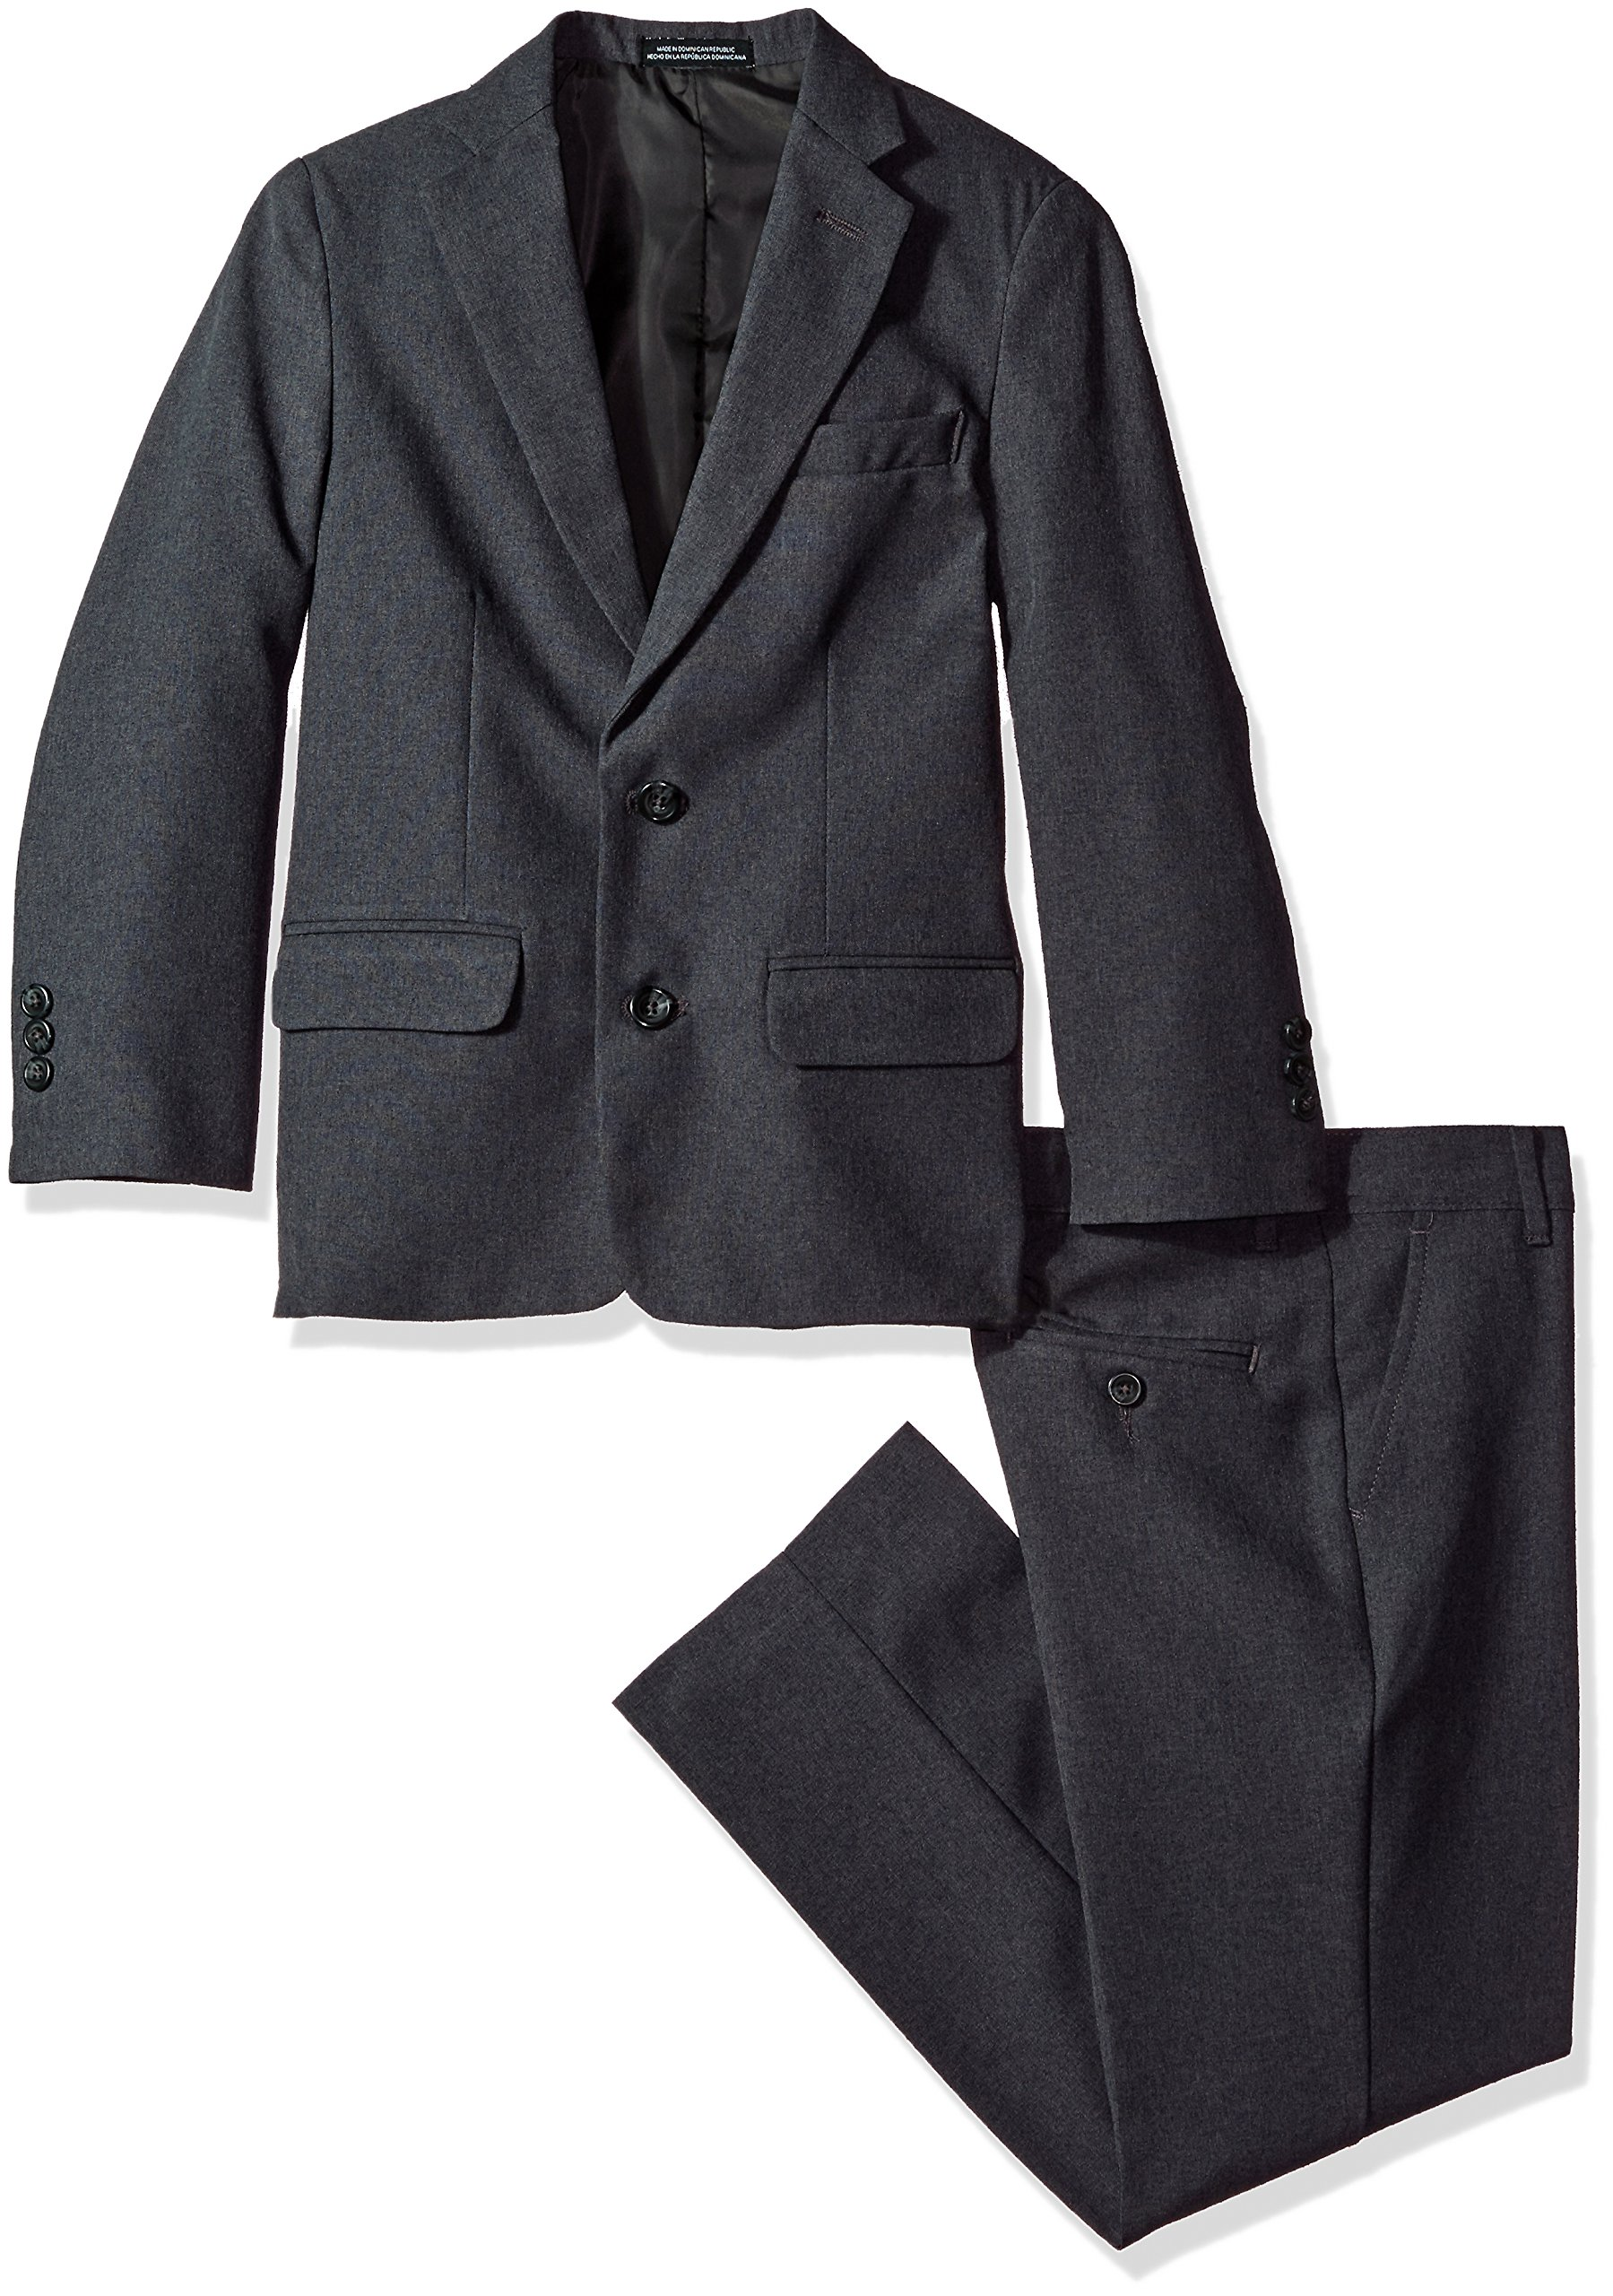 Van Heusen Big Boys' Heather Poplin 2 Pc Suit, Heather Charcoal, 12 by Van Heusen